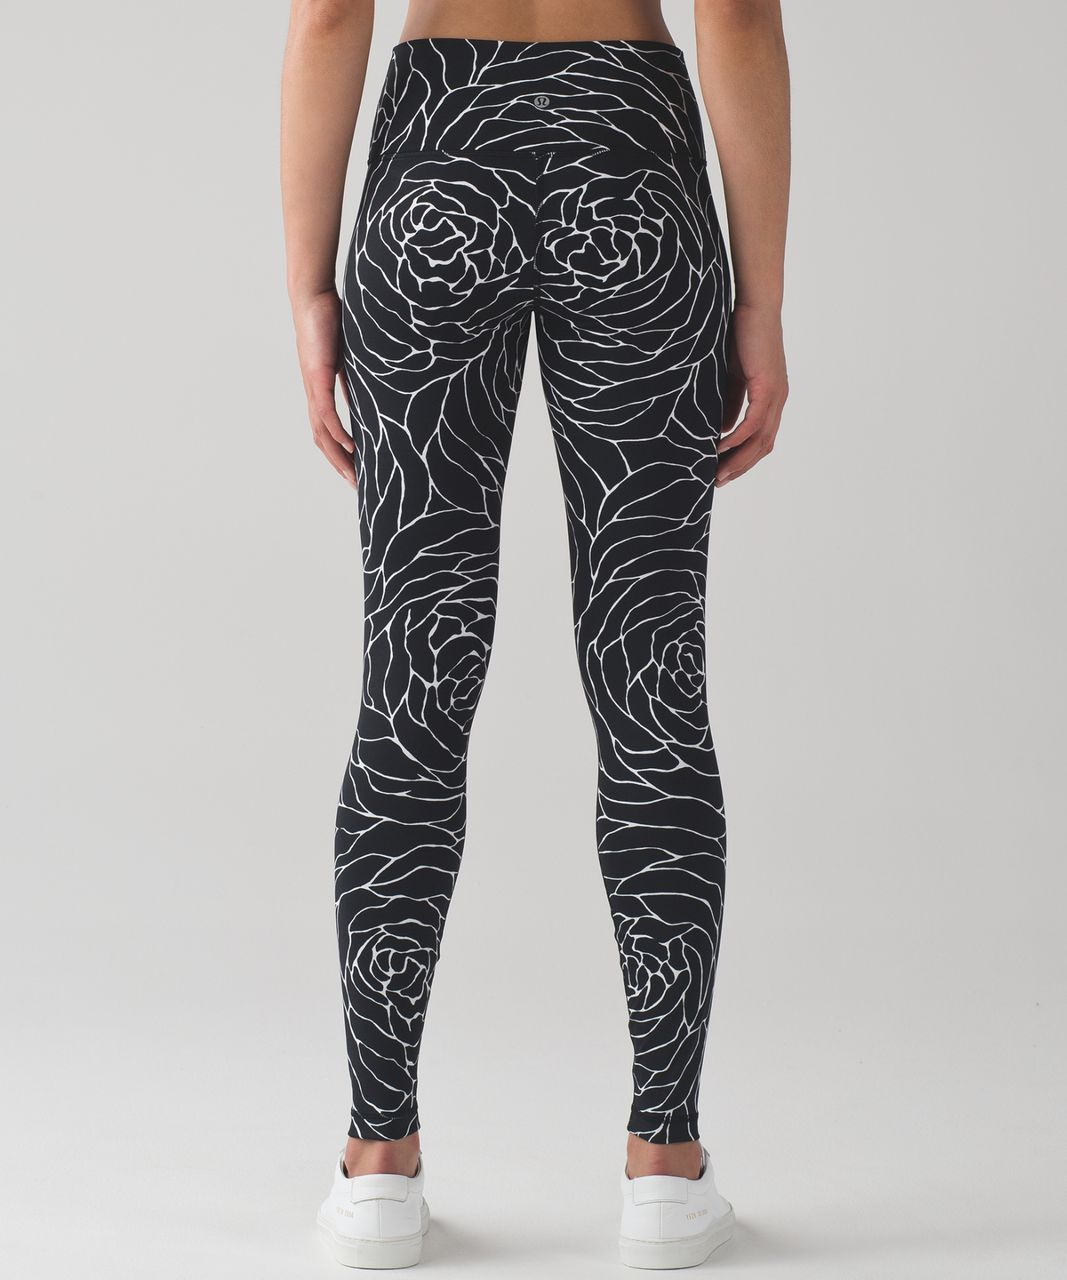 Lululemon Wunder Under Hi-Rise Tight (Full-On Luxtreme) - Radiate Rose Alpine White Black